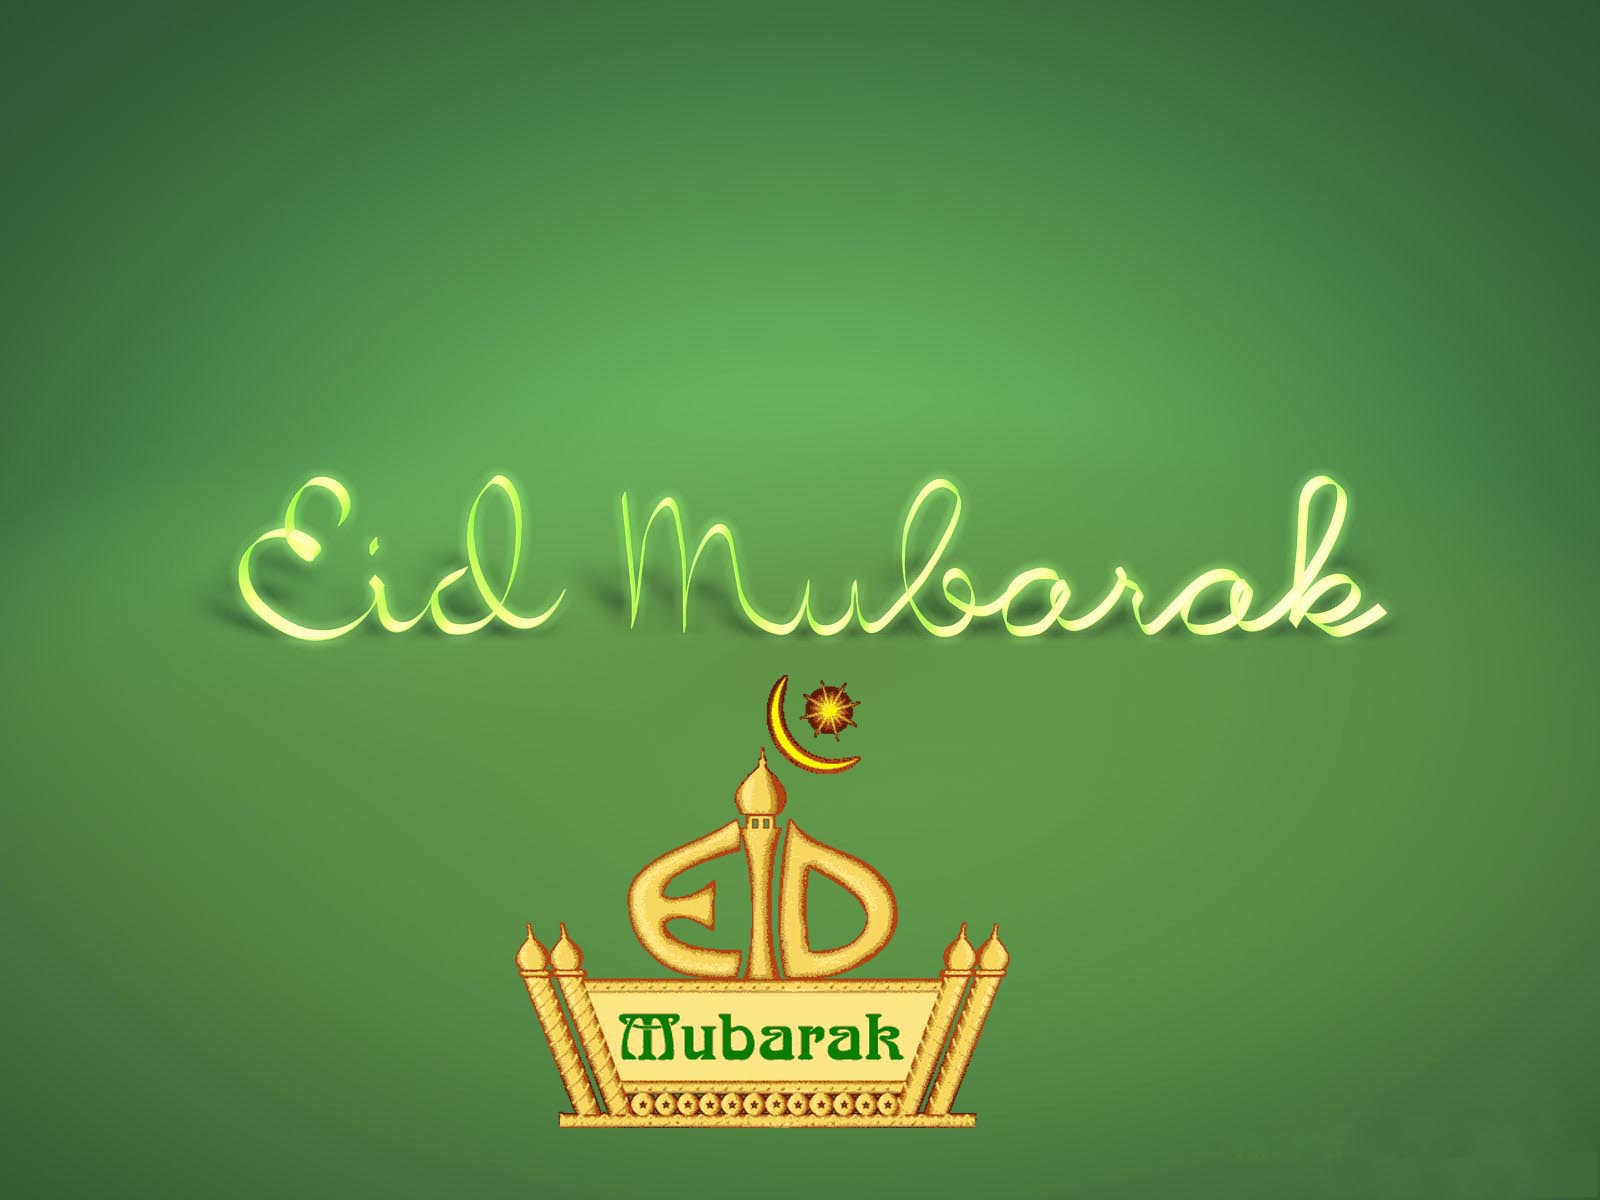 Eid Mubarak Whatsapp profile dp